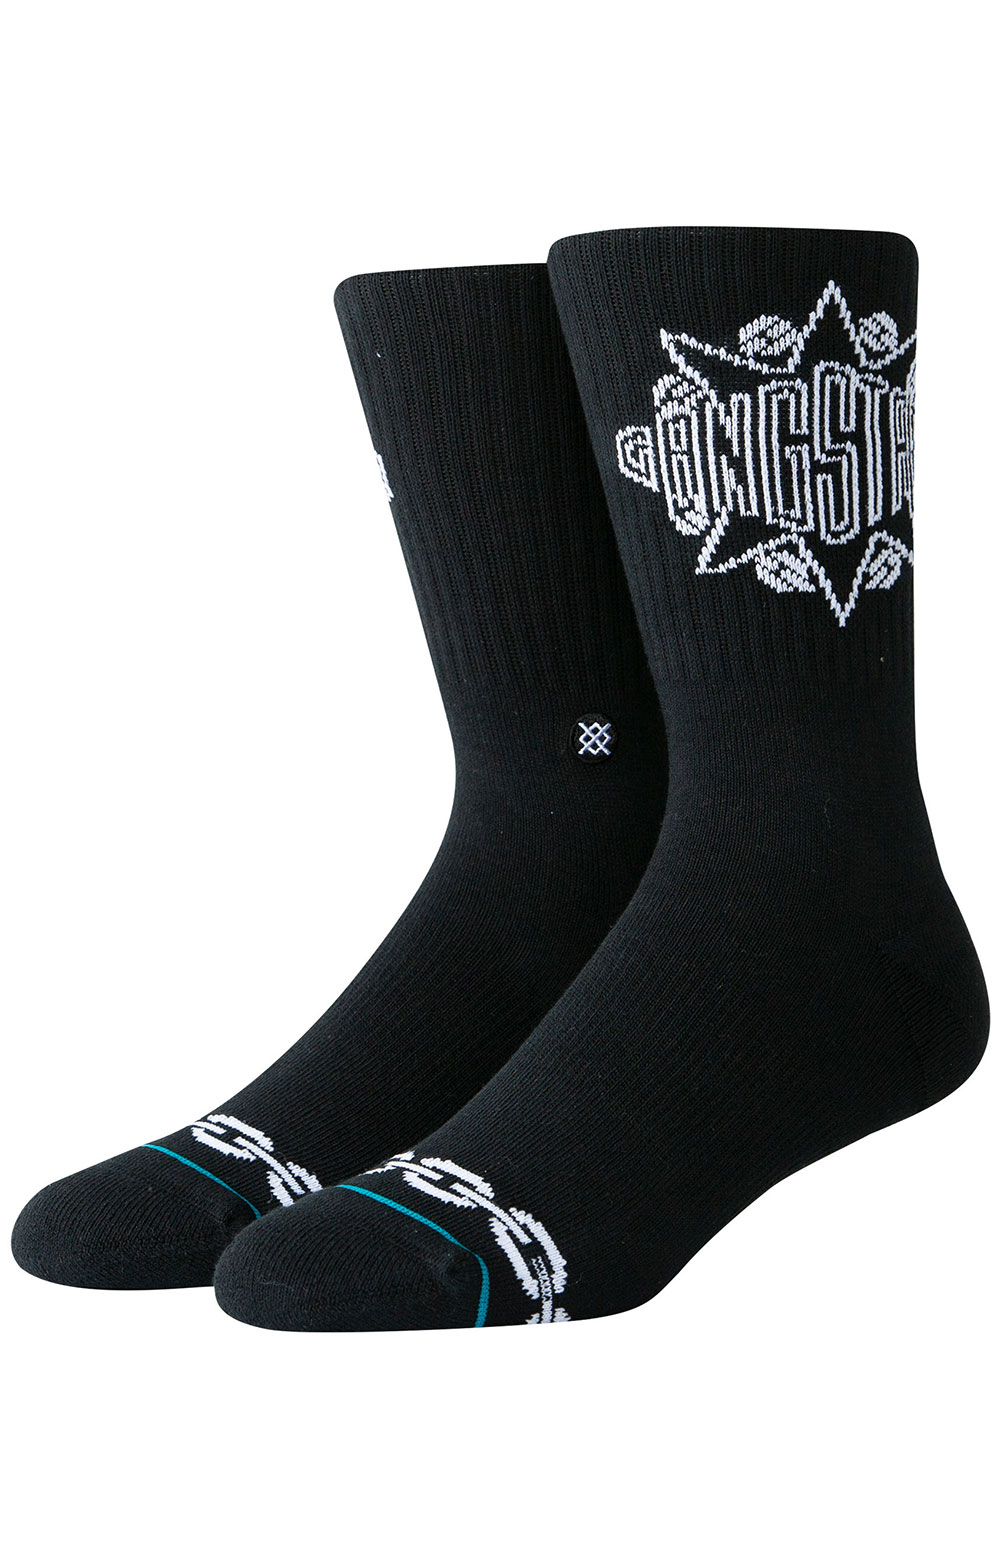 Stance, Gangstarr Socks - Black